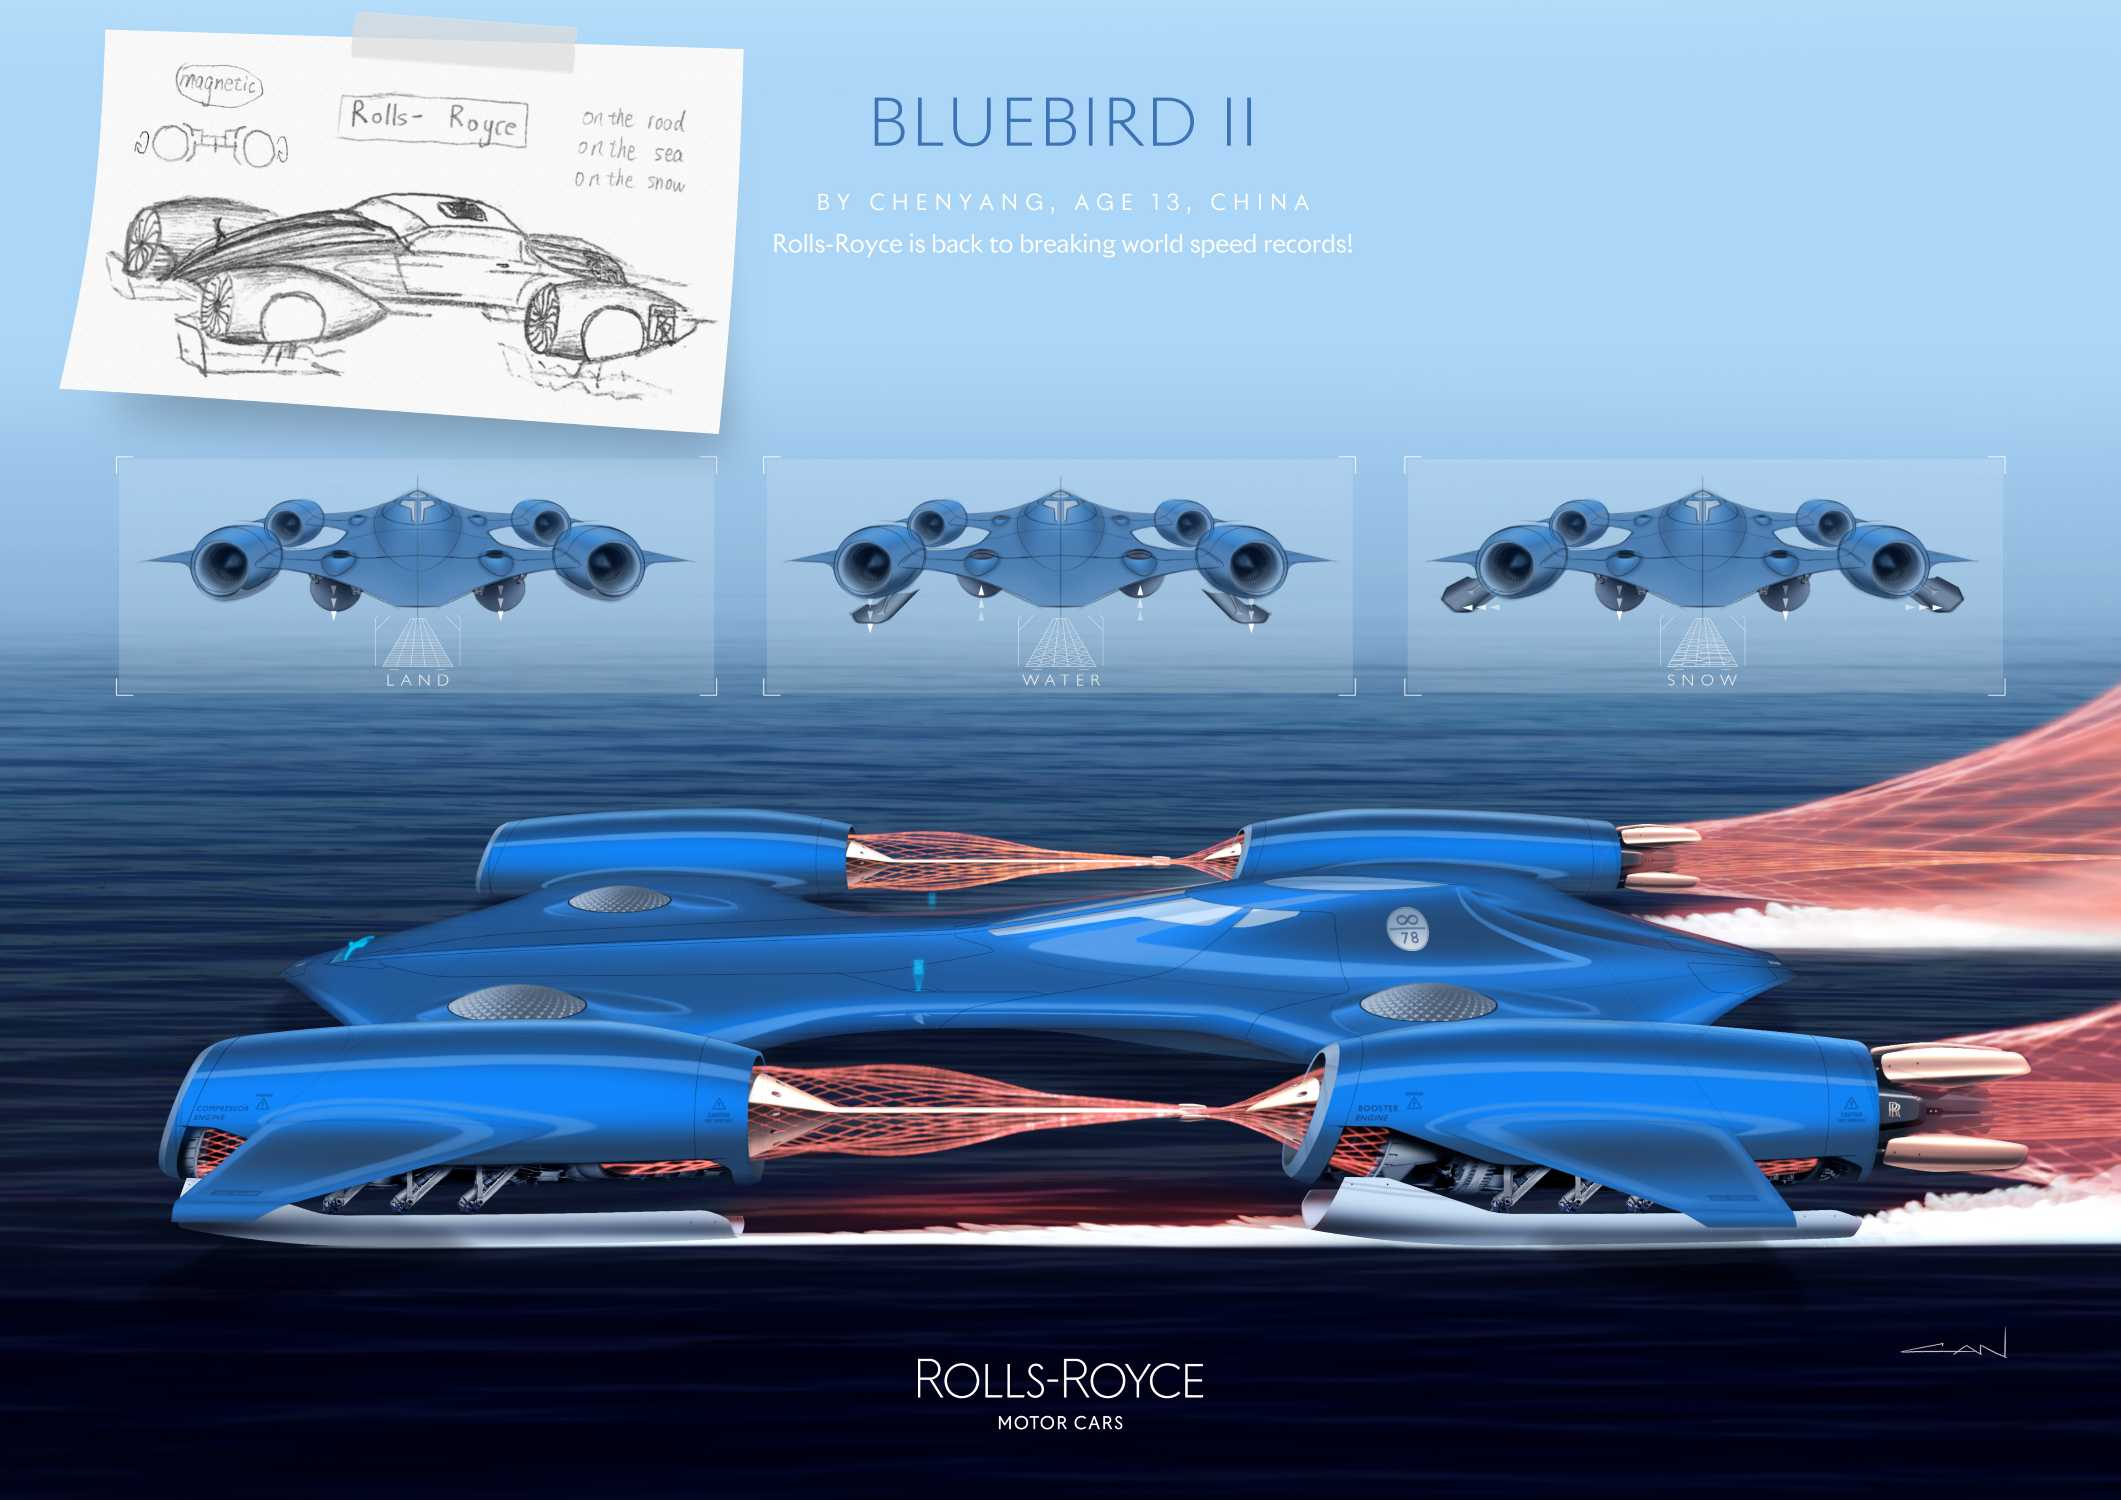 ROLLS-ROYCE BLUEBIRD II BY CHENYANG, AGE 13, CHINA. TECHNOLOGY CATEGORY WINNER IN THE ROLLS-ROYCE YOUNG DESIGNER COMPETITION.